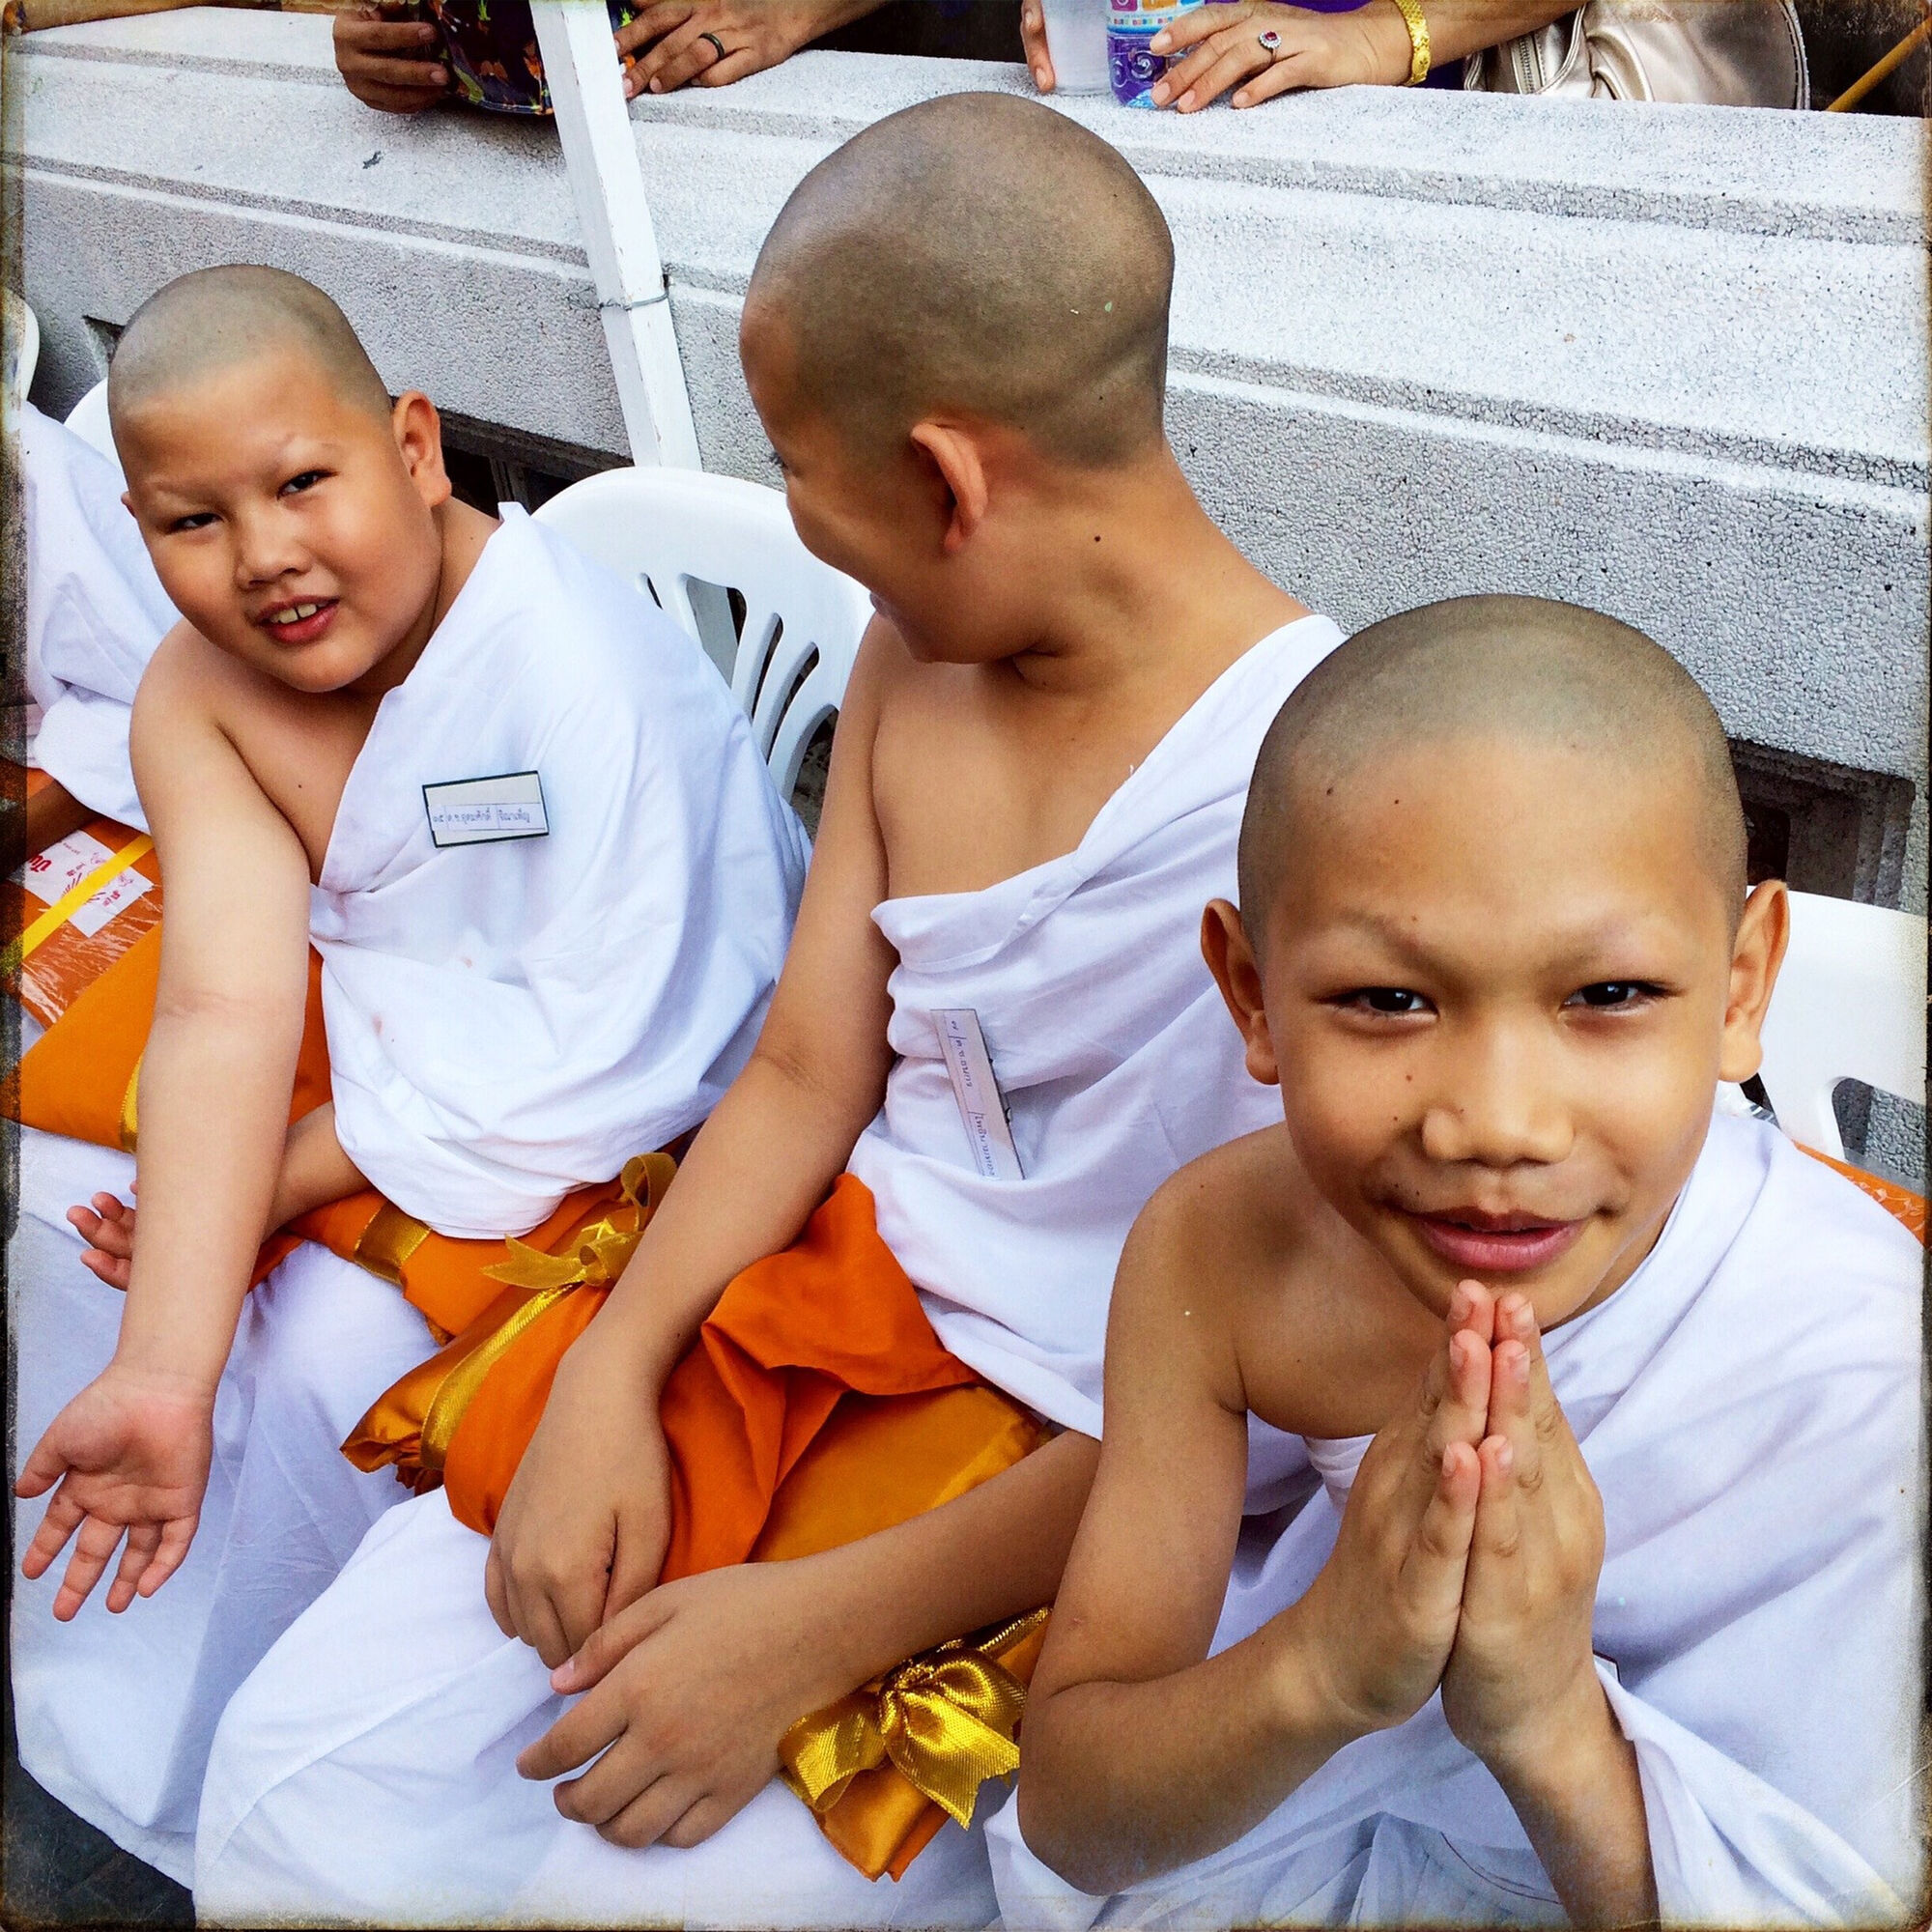 A boy gives a traditional Thai greeting to the camera before he and his friends take their vows to become full-fledged Buddhist monks at a ceremony in Bangkok in April. COLIN CORNEAU/BRANDON SUN